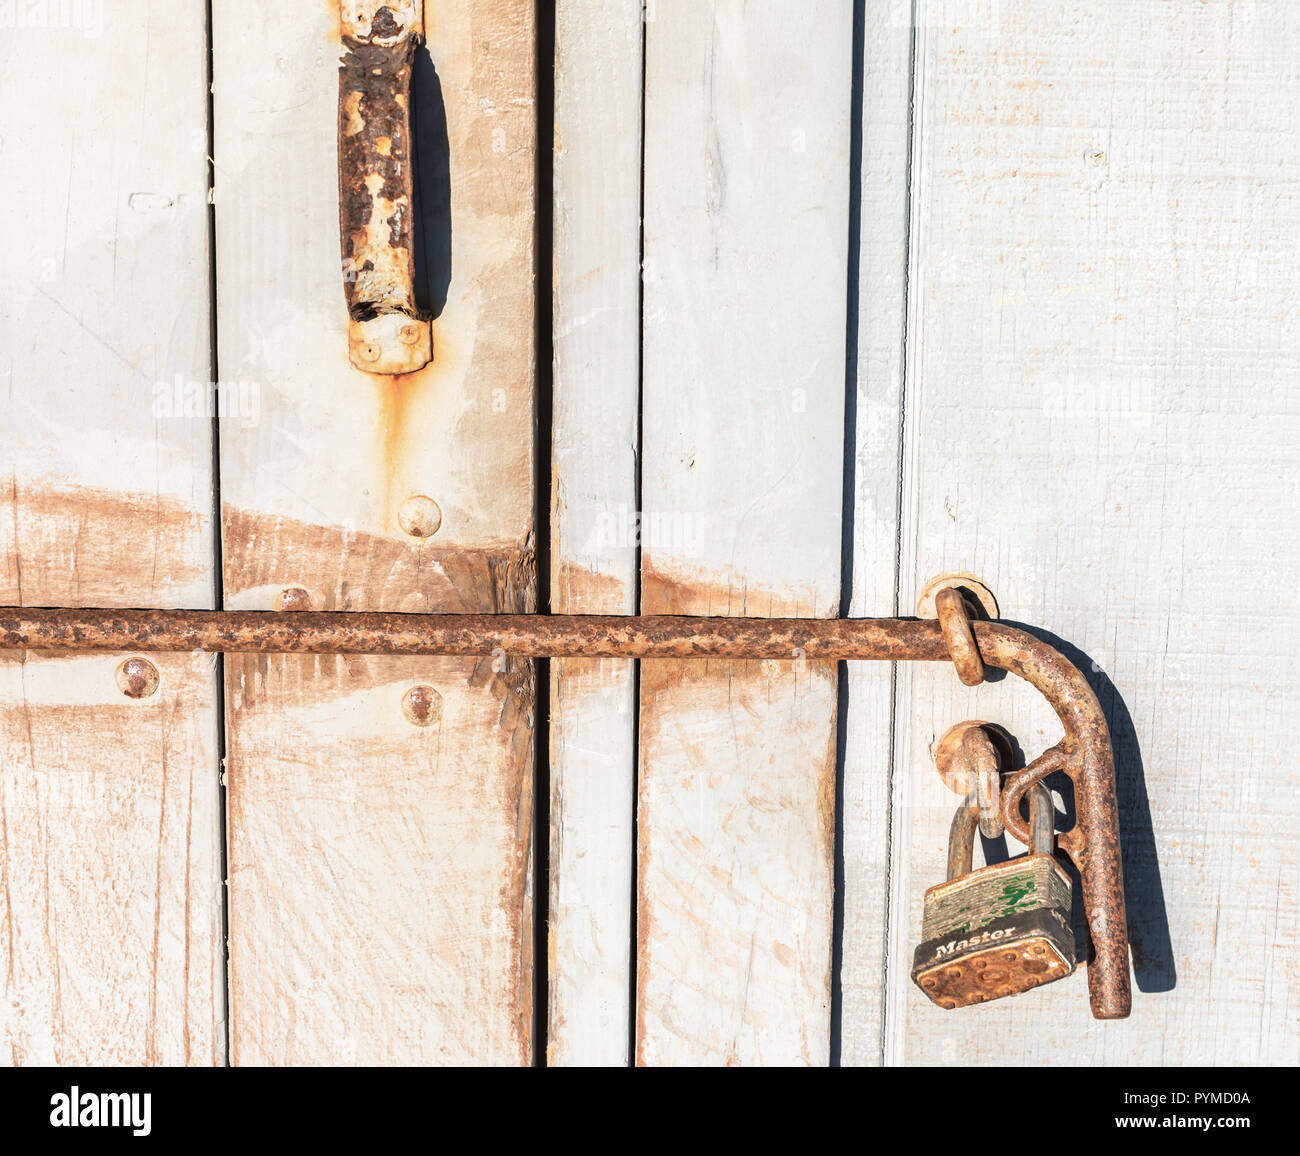 Detail image of a pad lock on a old shed at the beach in Bridgehampton, NYh, - Stock Image